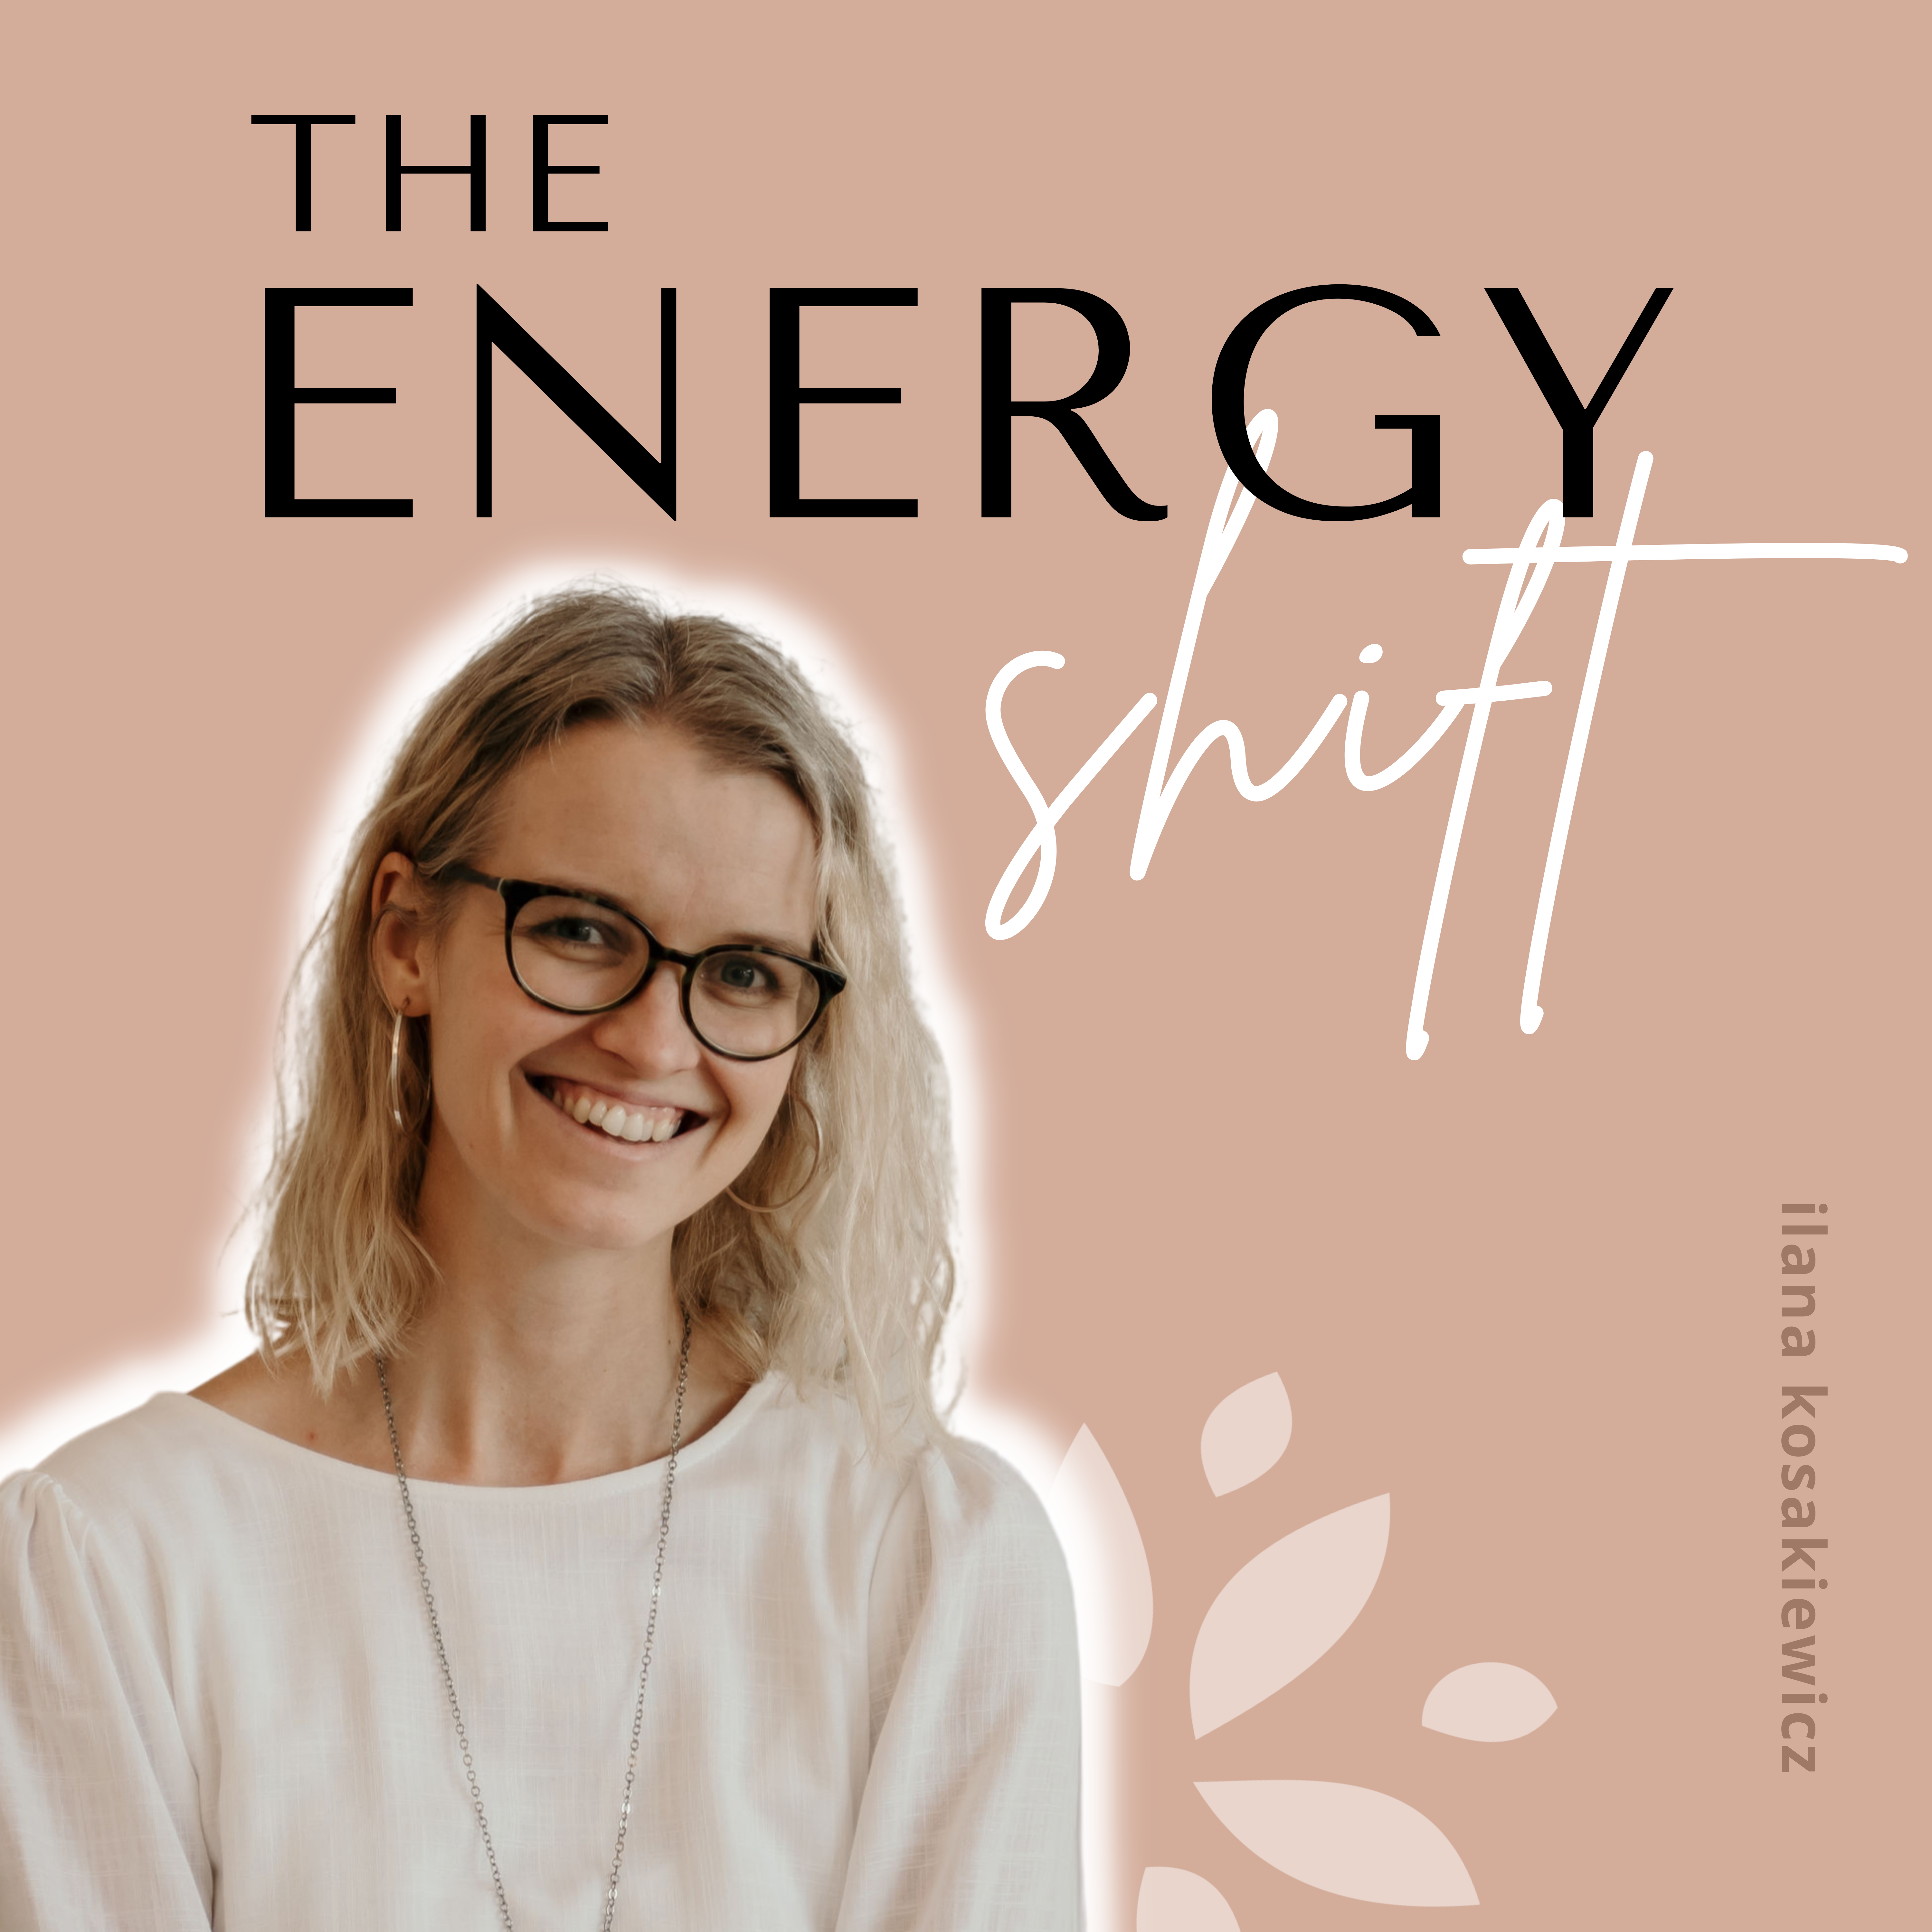 The Energy Shift podcast show image